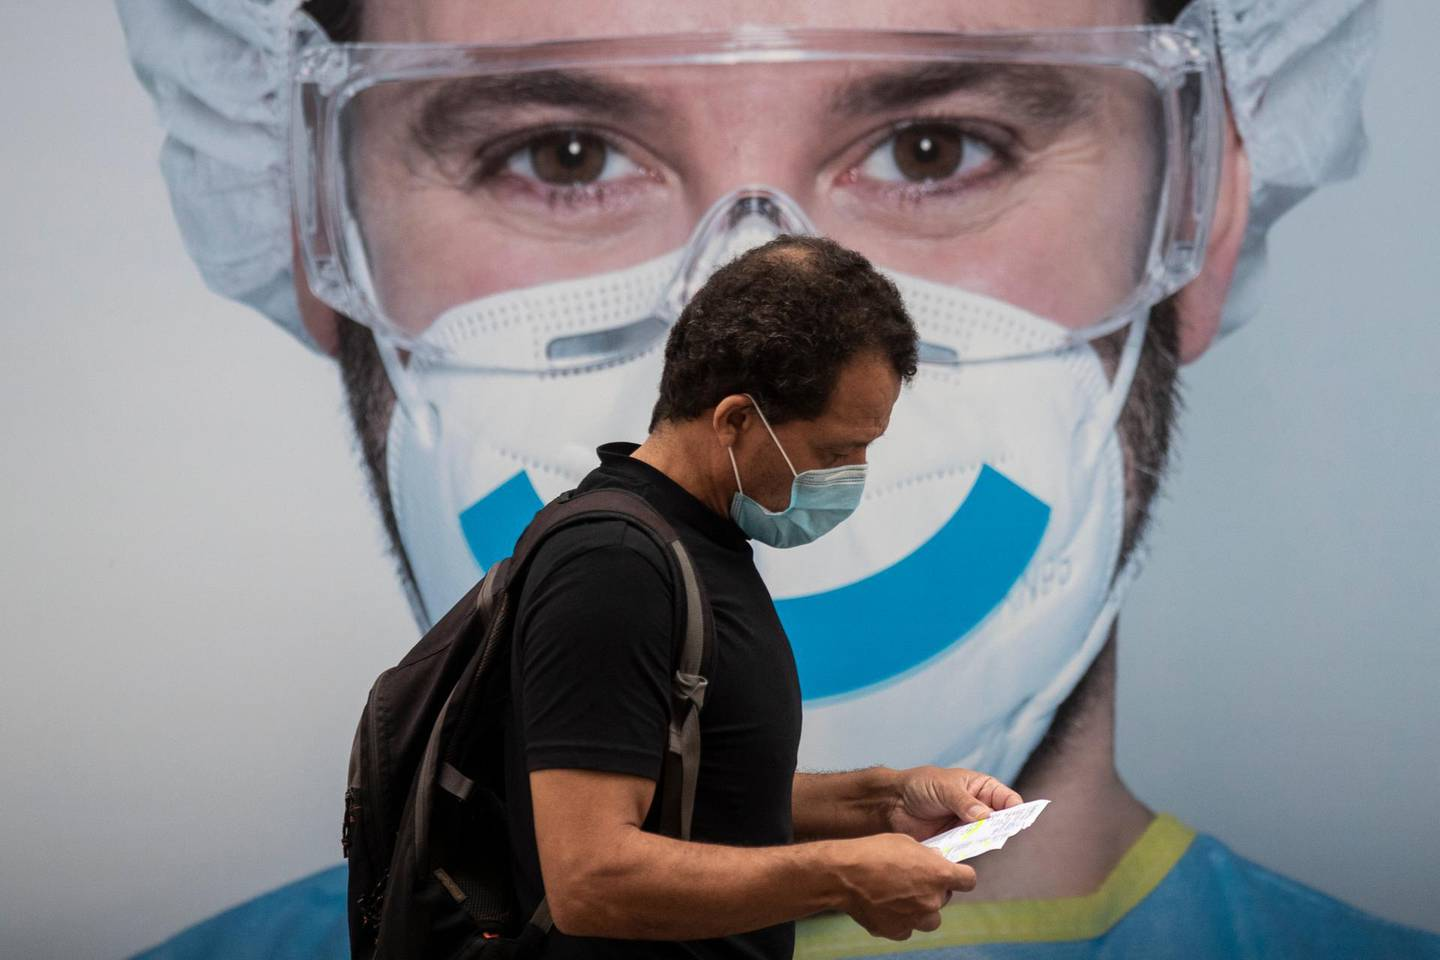 A man wearing a face mask to prevent the spread of coronavirus walks in the Vallecas neighborhood in Madrid, Spain, Saturday, Sept. 19, 2020. Authorities in Madrid, the European capital experiencing the worst second-wave outbreak, are introducing new curbs on social gatherings starting Monday. (AP Photo/Manu Fernandez)